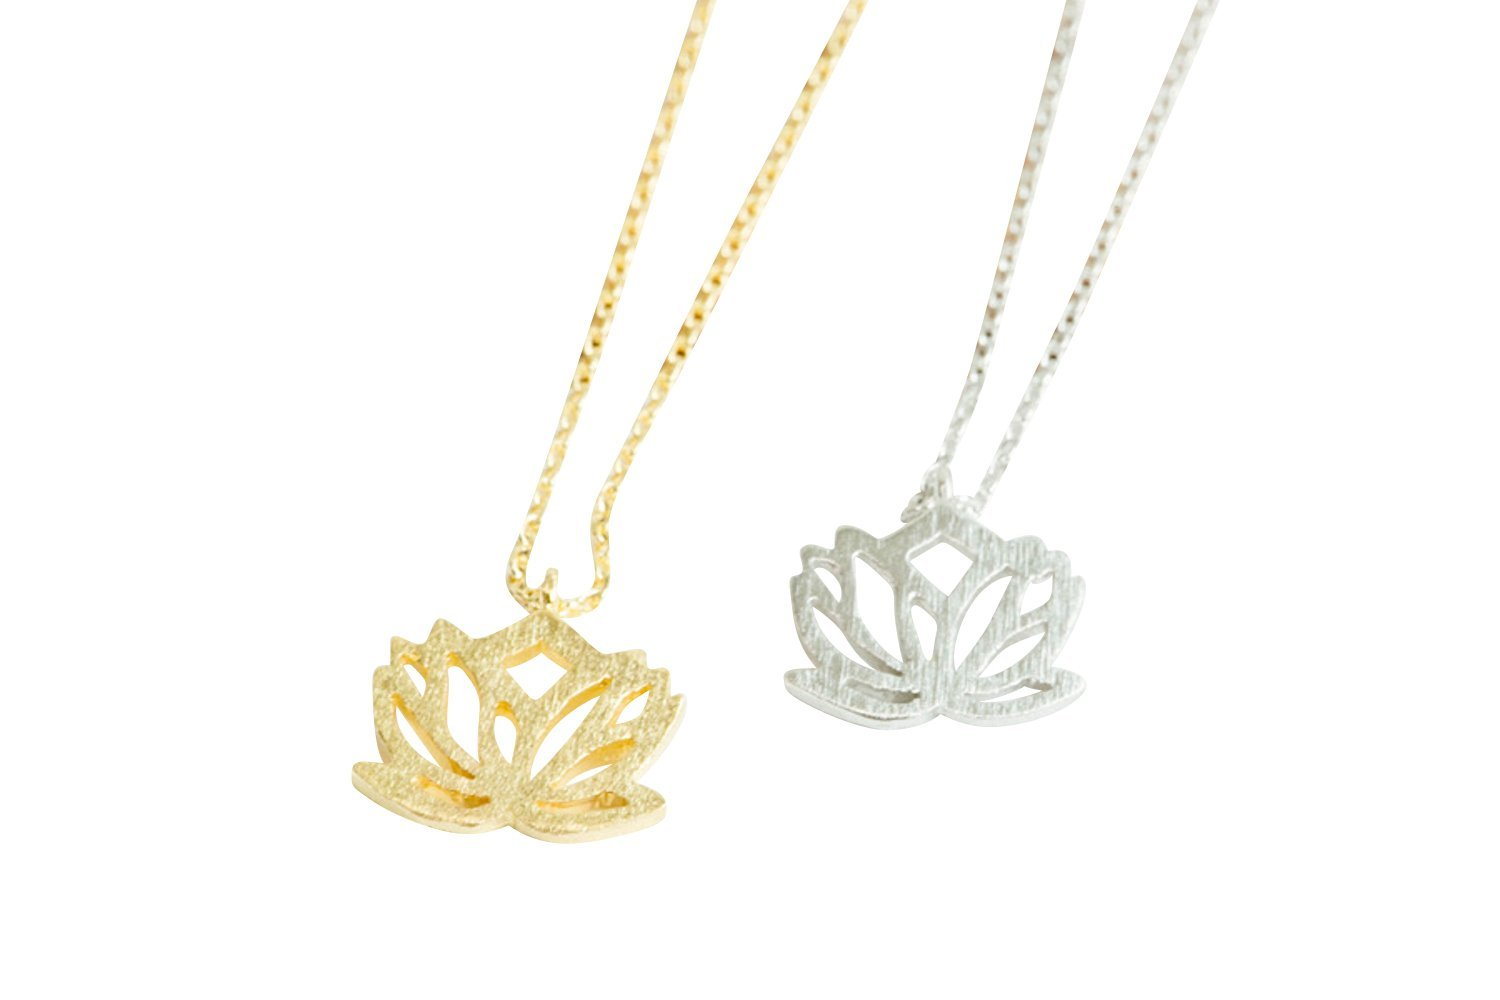 Cheap New Beginnings Lotus Flower Necklace Find New Beginnings